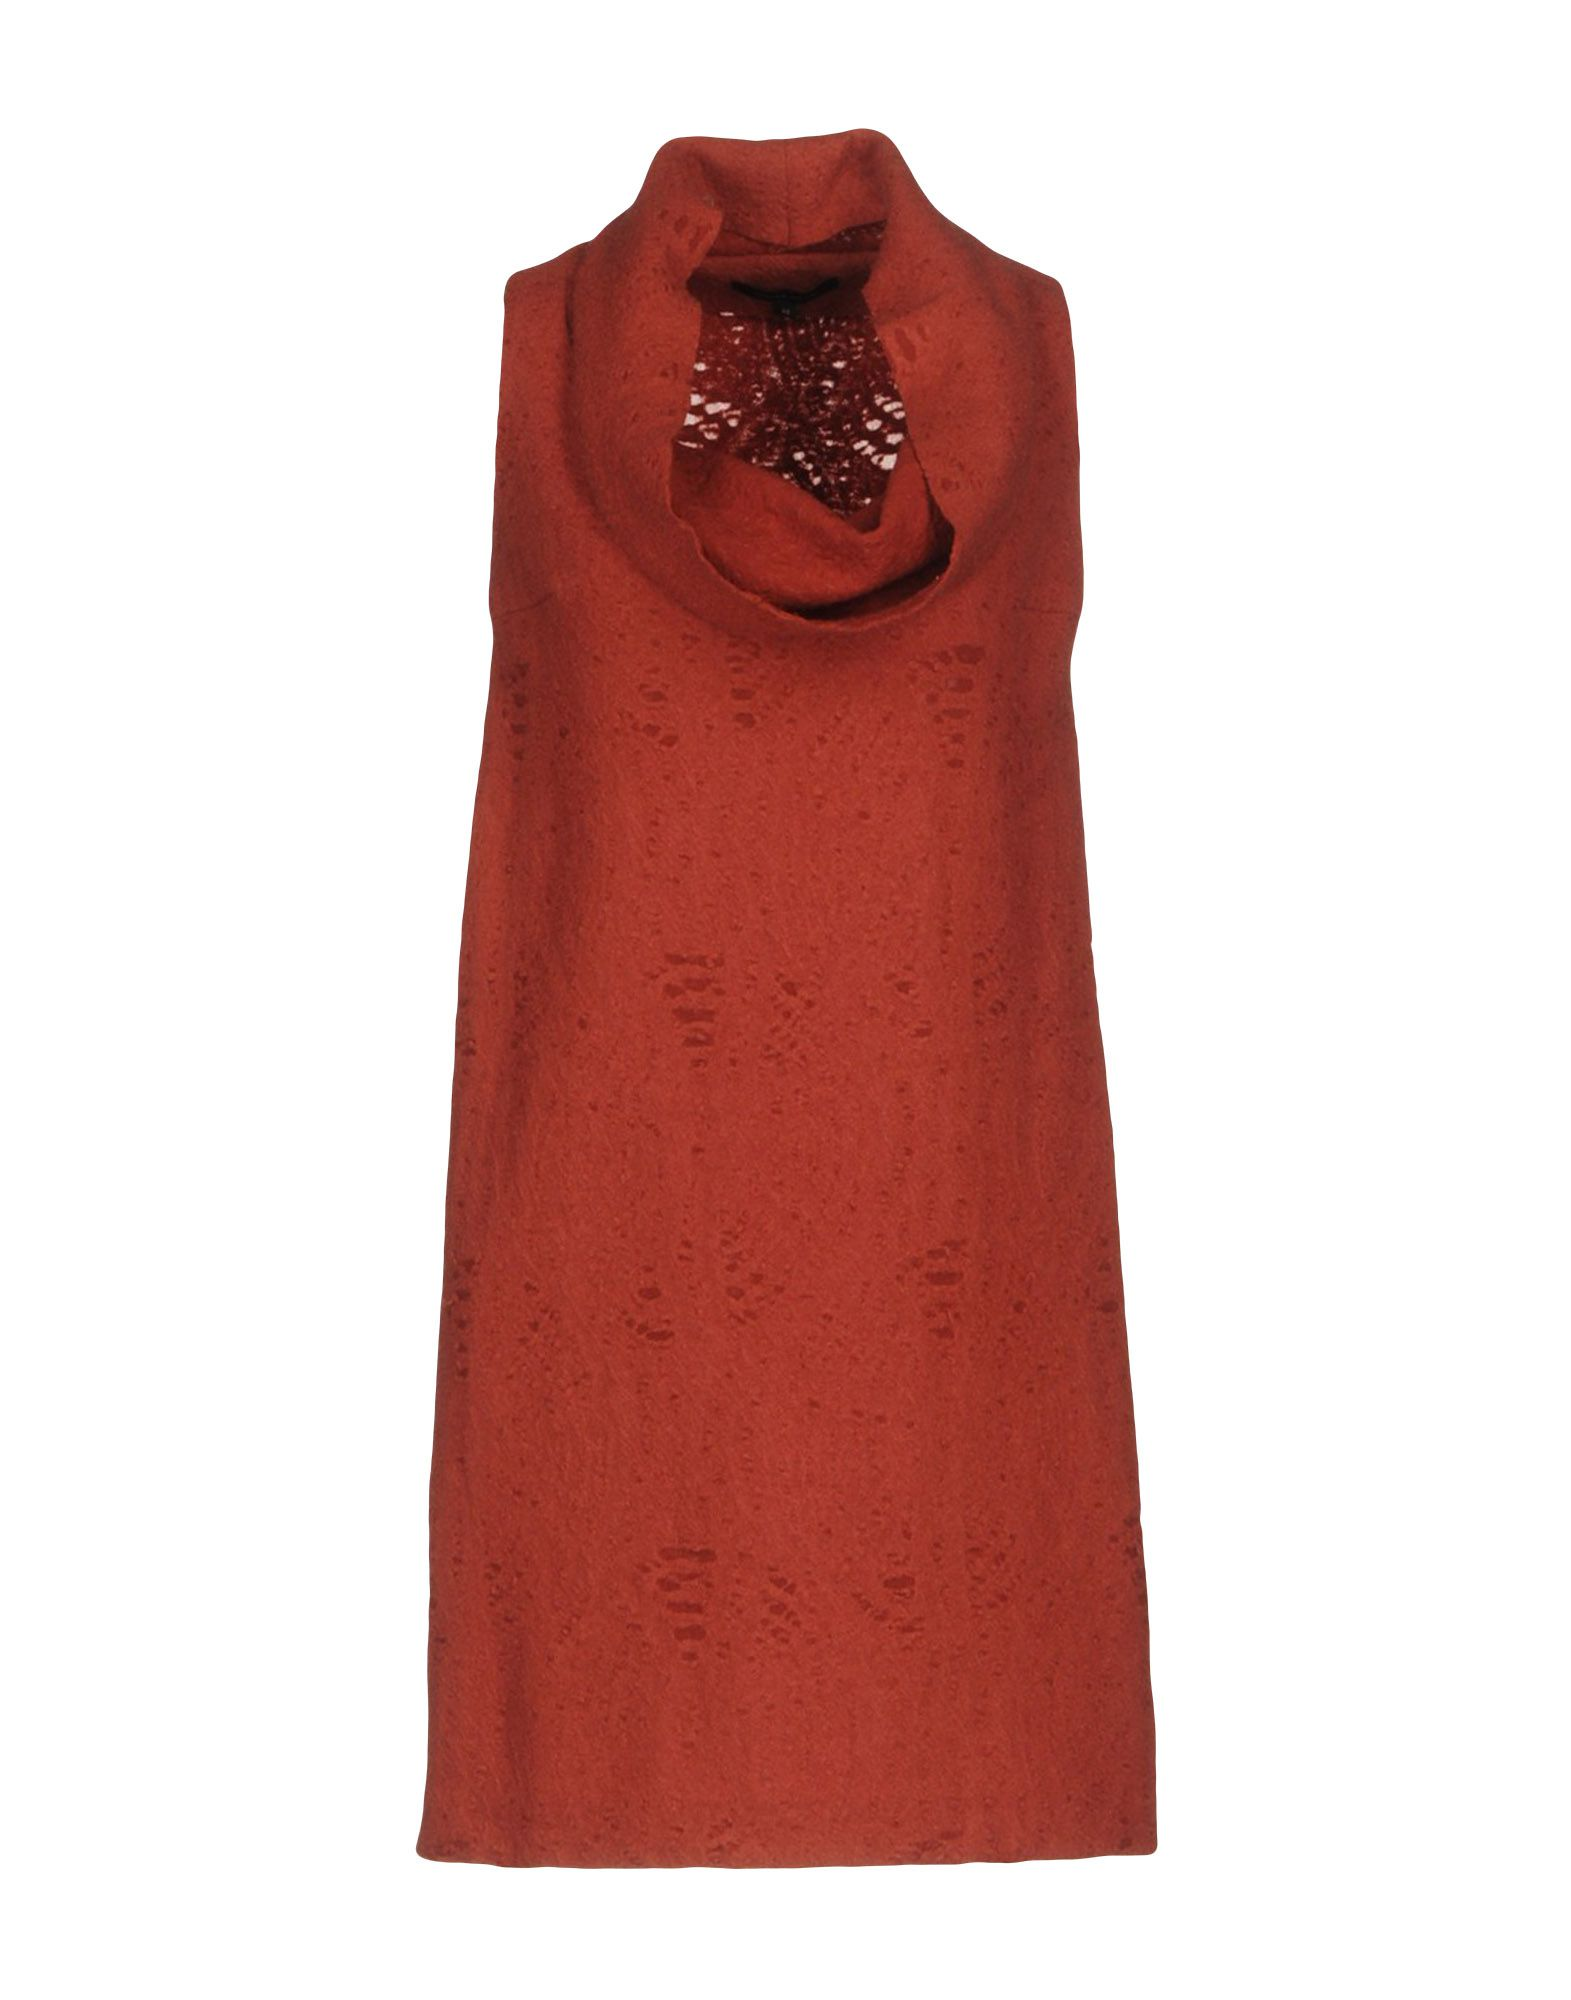 WALTER VOULAZ Short Dress in Brick Red